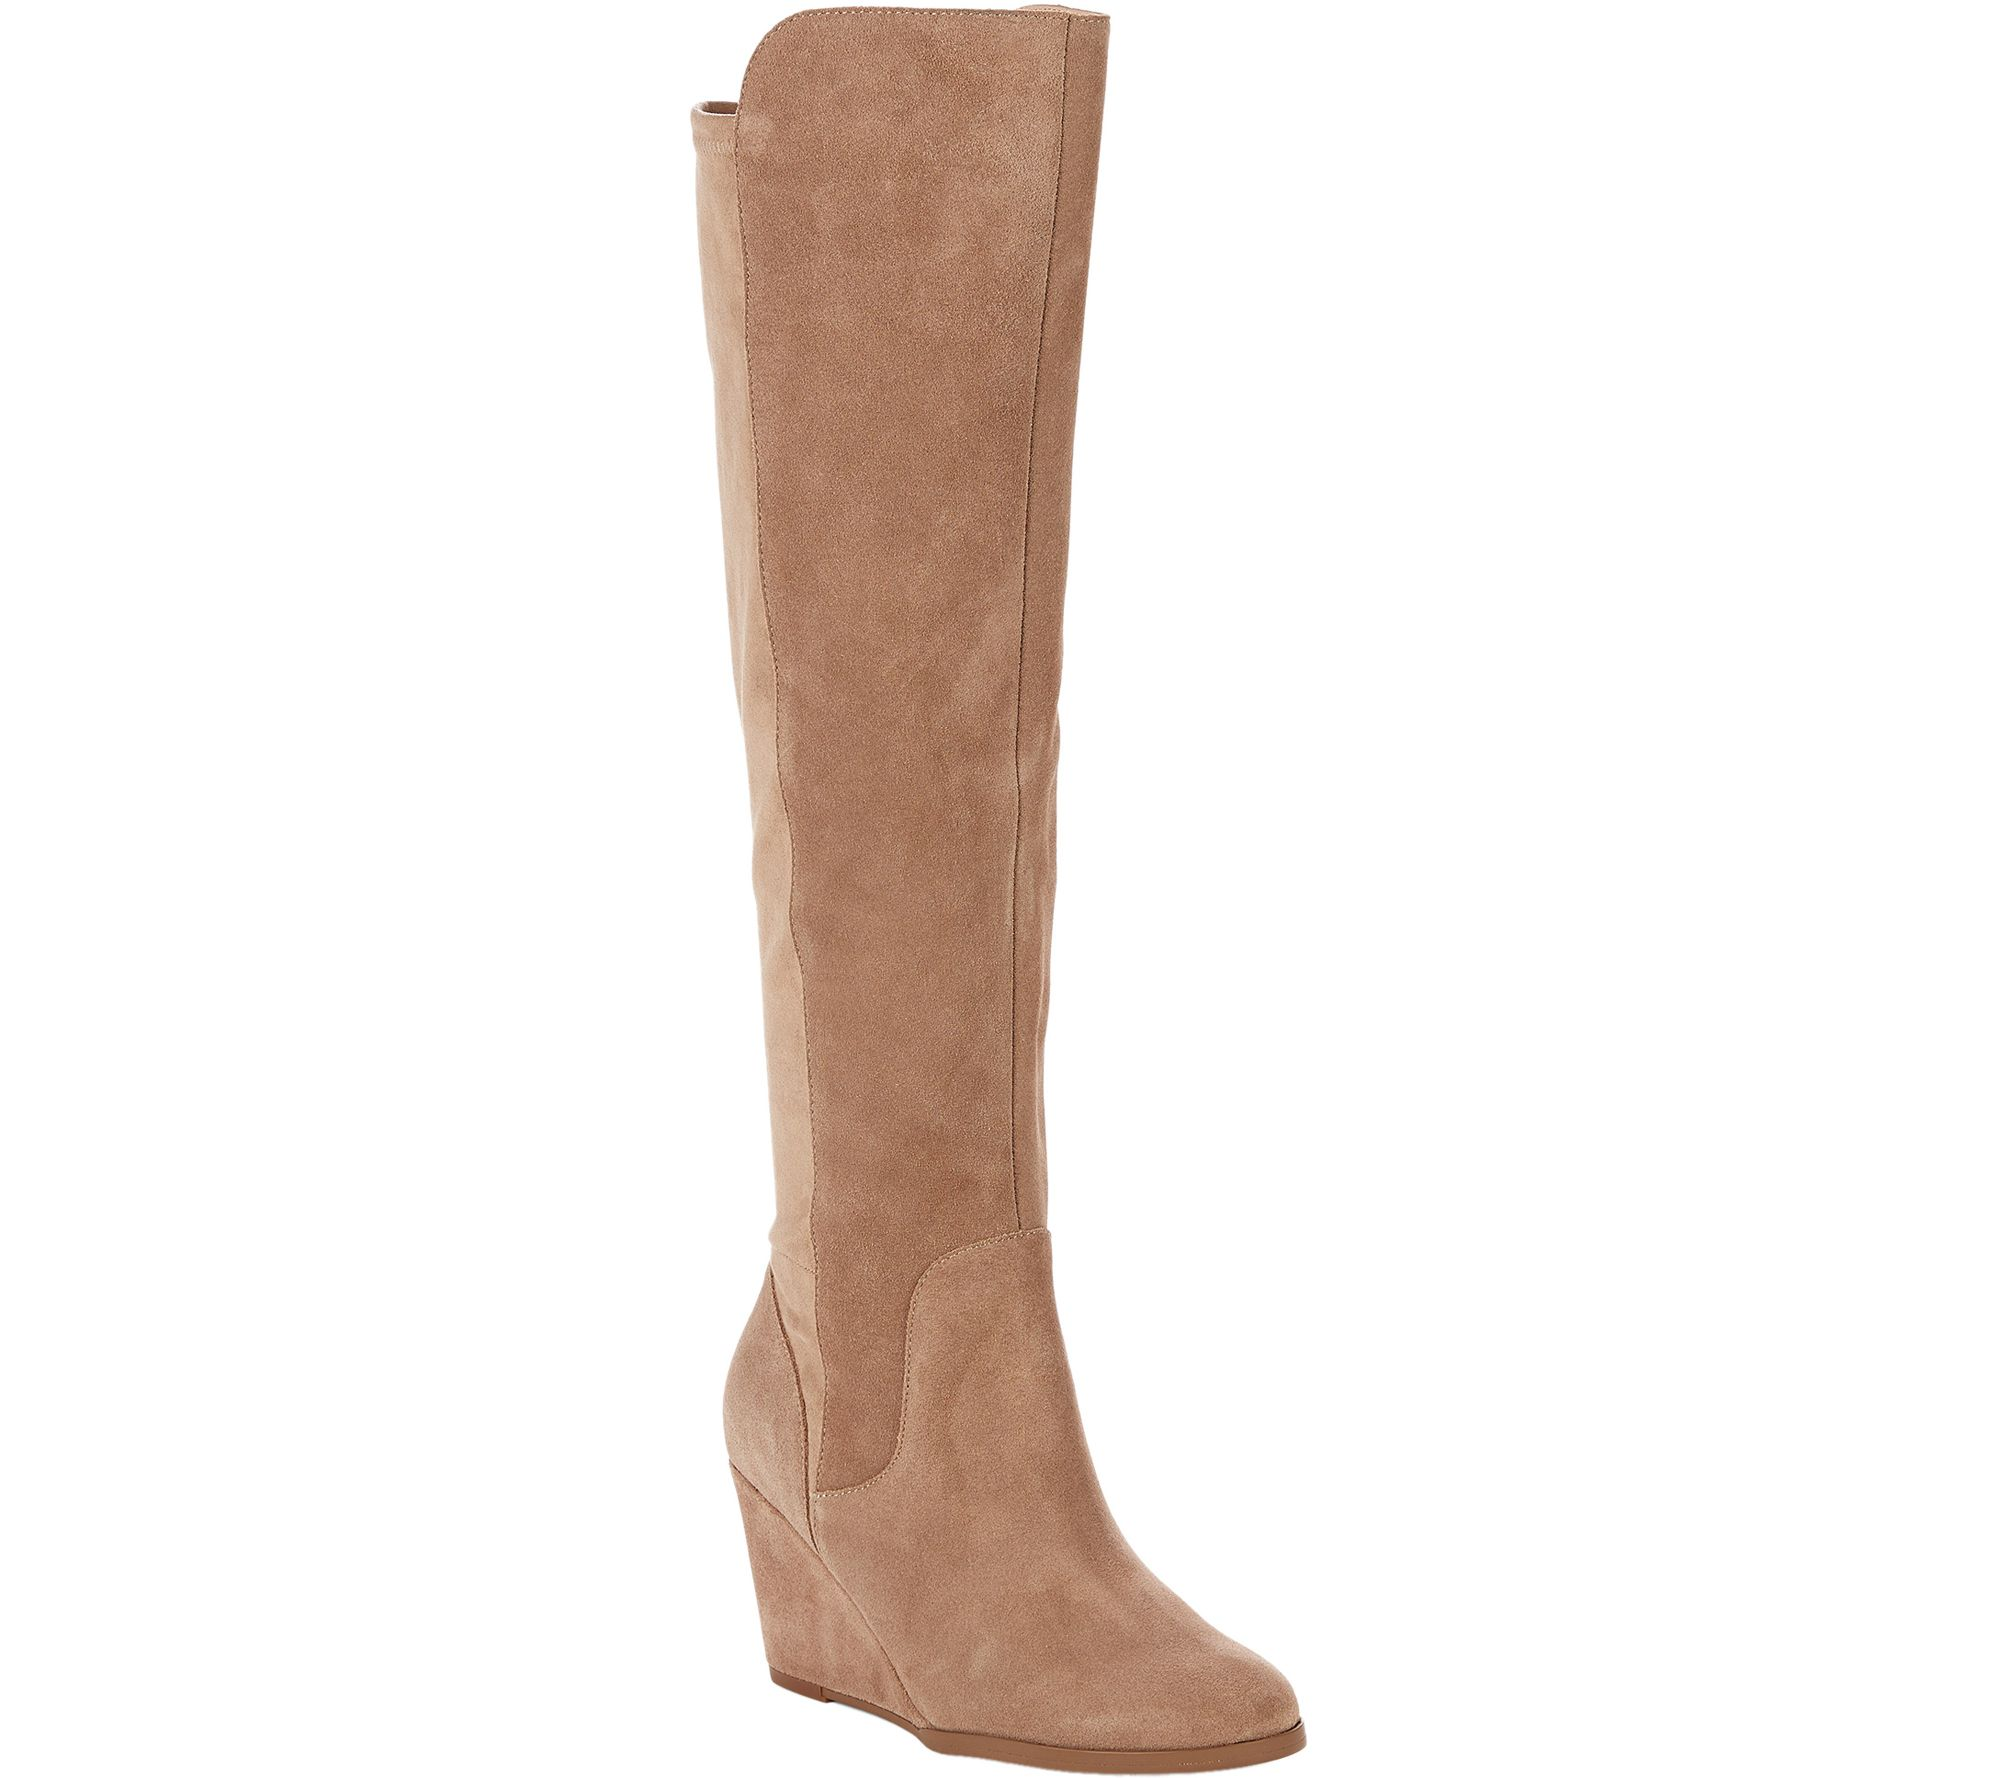 5bb13f09c165 Sole Society Tall Leather Boots - Laila — QVC.com